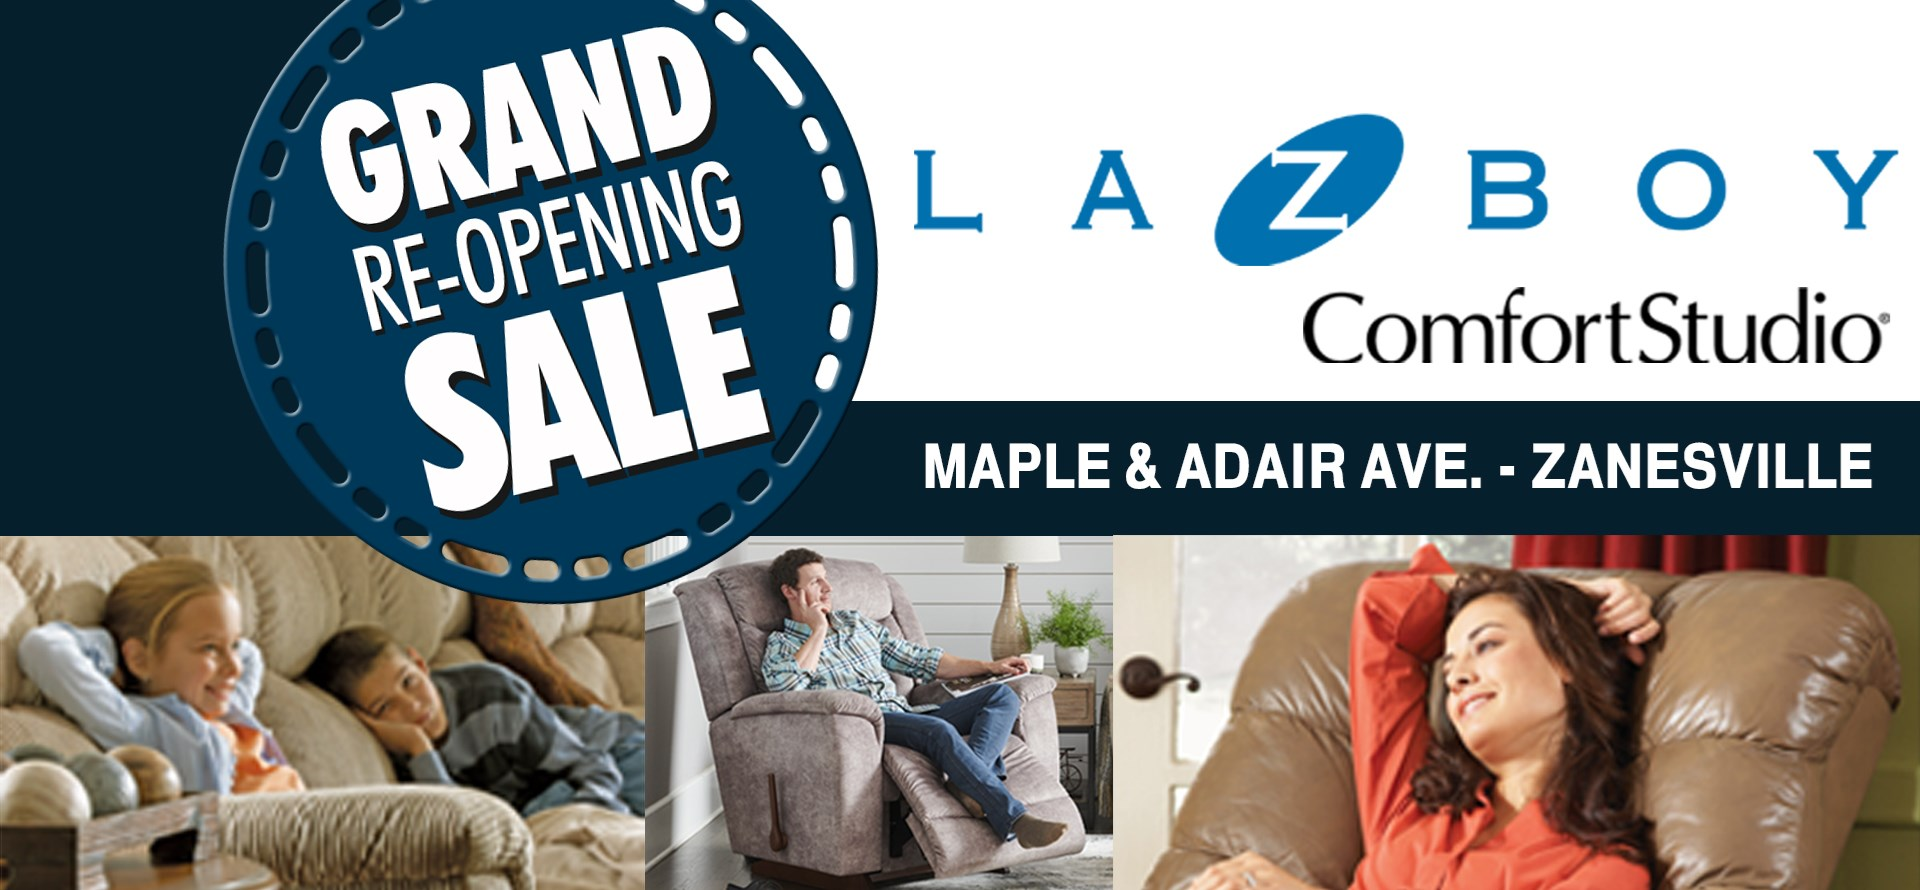 Celebrate the Grand Re-Opening of our La-Z-Boy Comfort Studio in Zanesville, on the corner of Maple and Adair